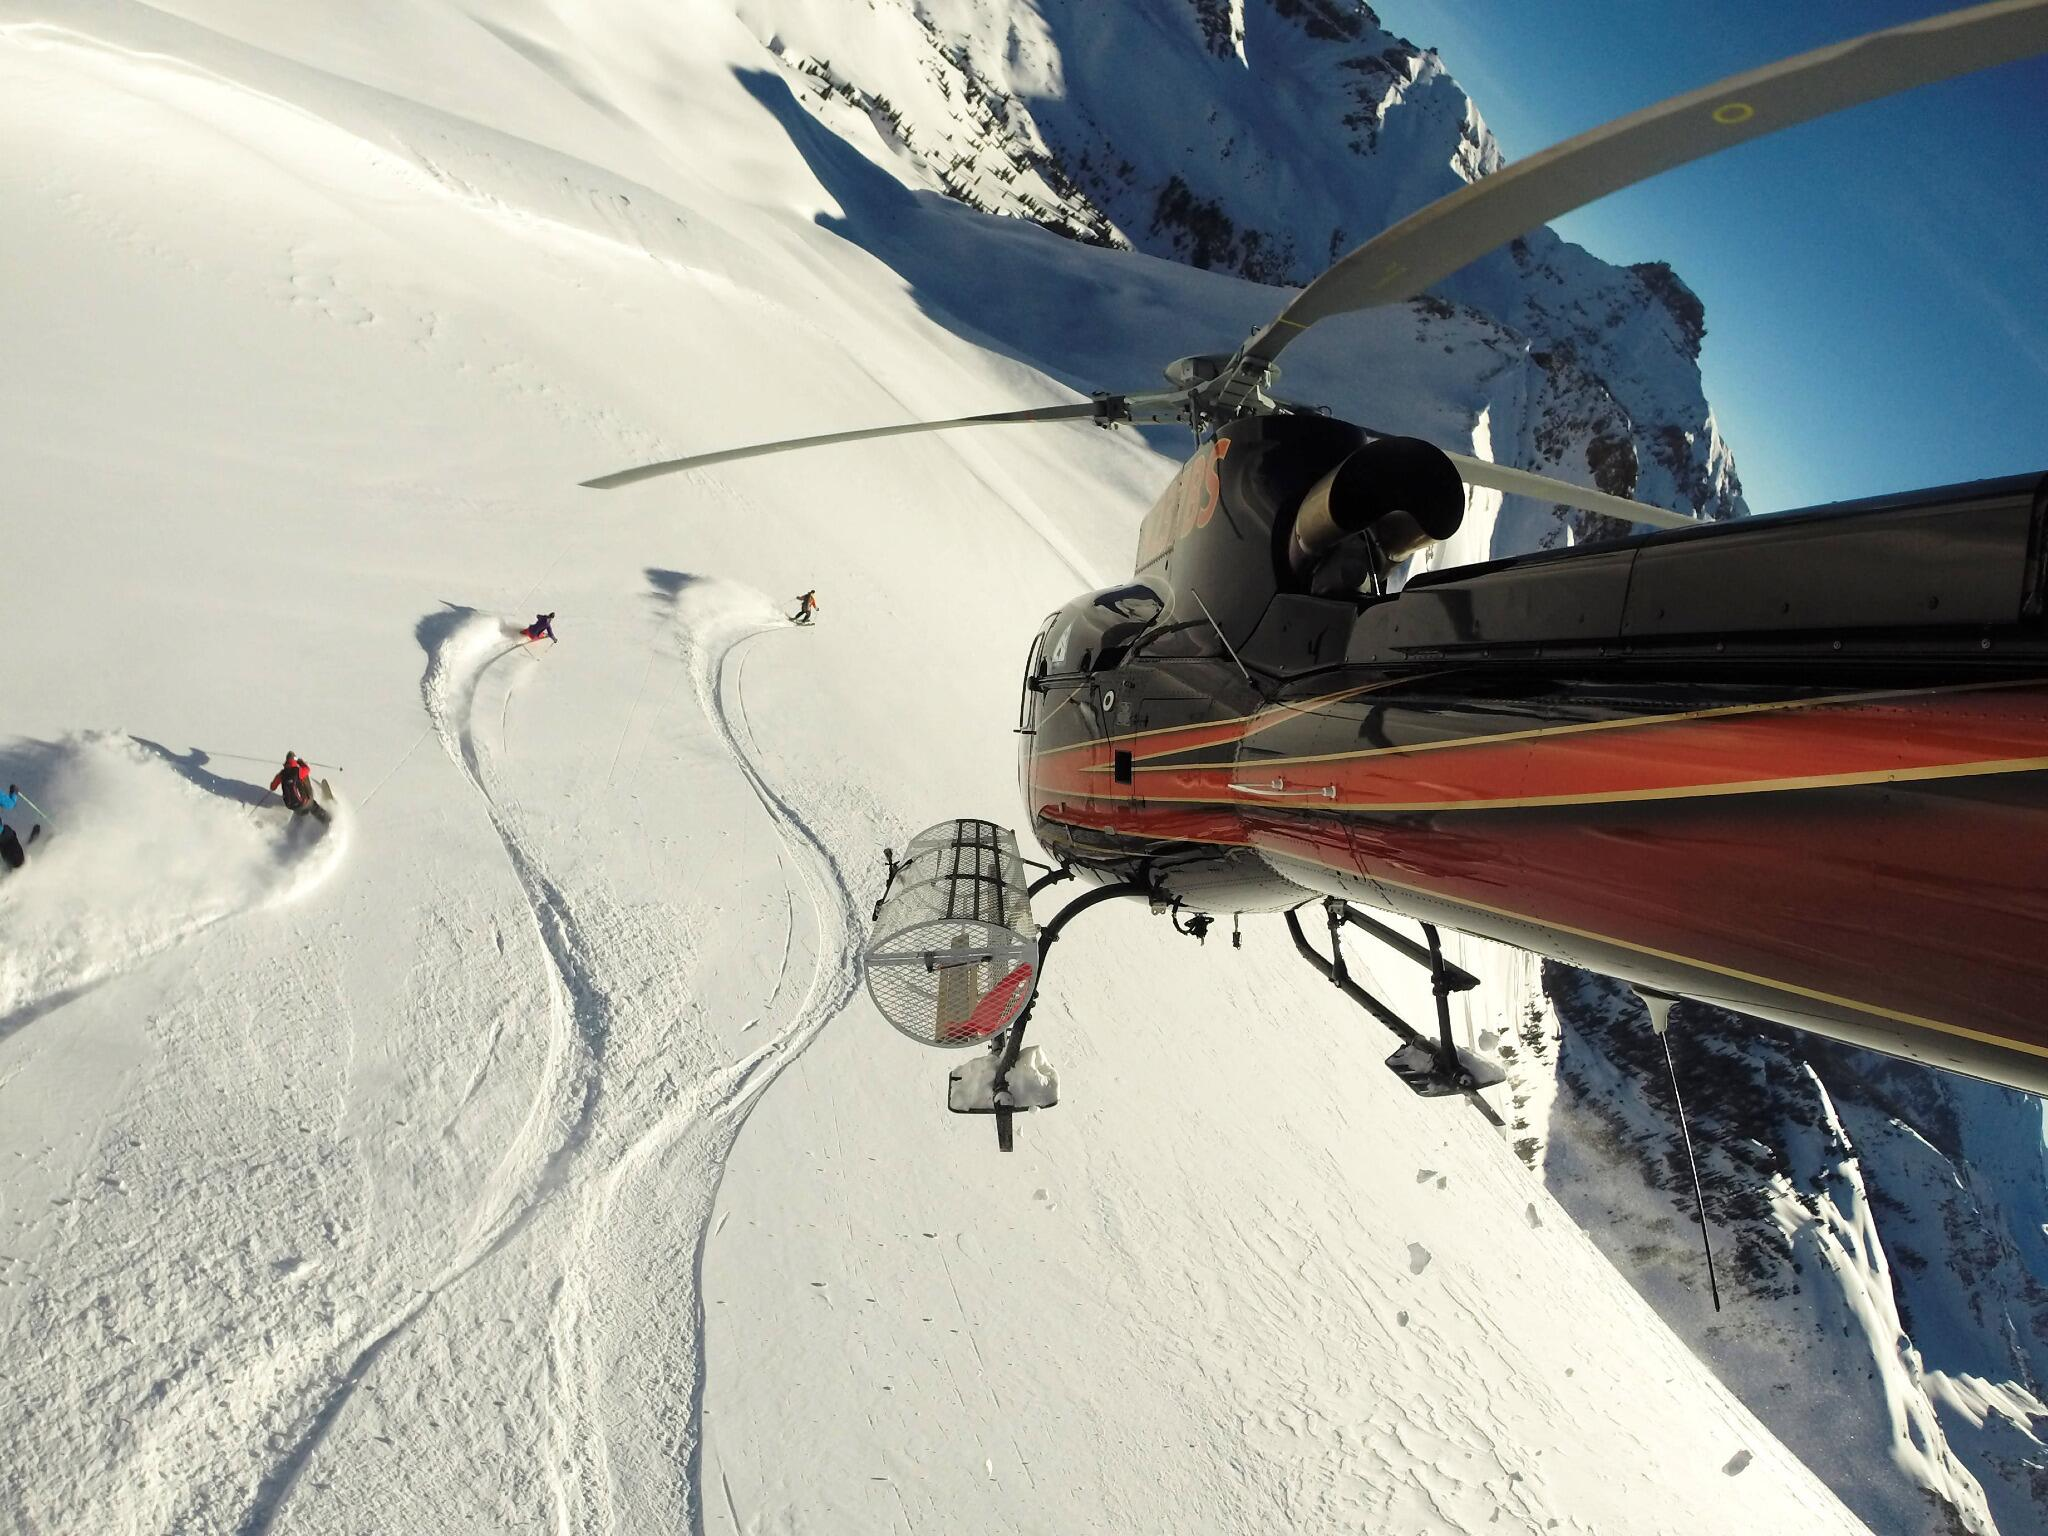 Photo of the Day! Heli skiers get buzzed by the ultimate ski lift in Telluride, CO. Photo by @bschreckengost. http://t.co/8b66qdcpBG